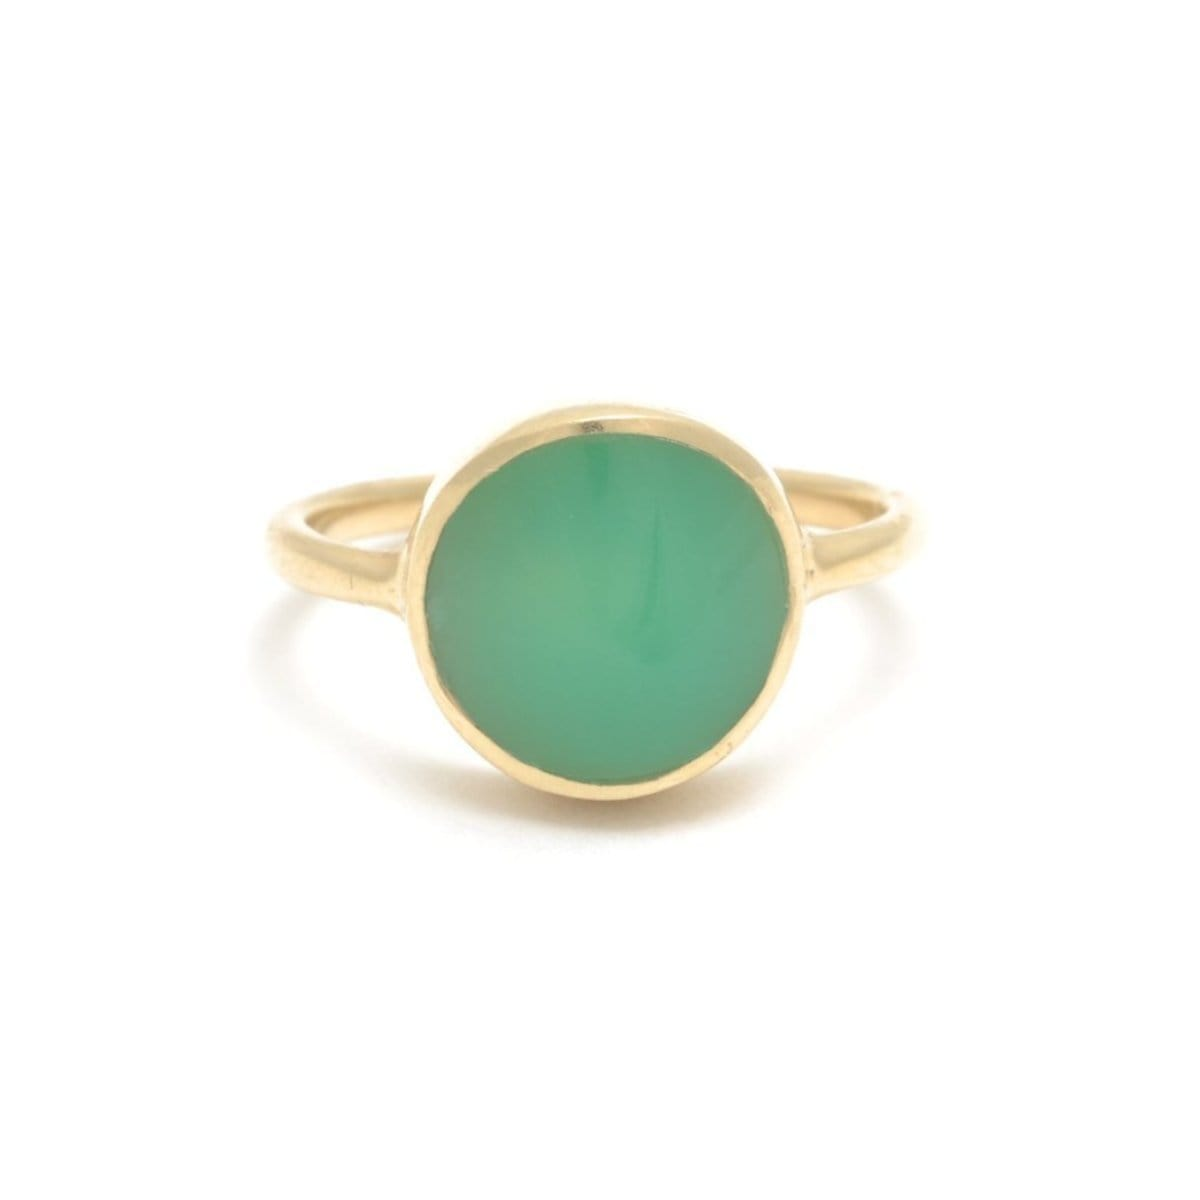 Inset Polished Chrysoprase Signet Ring